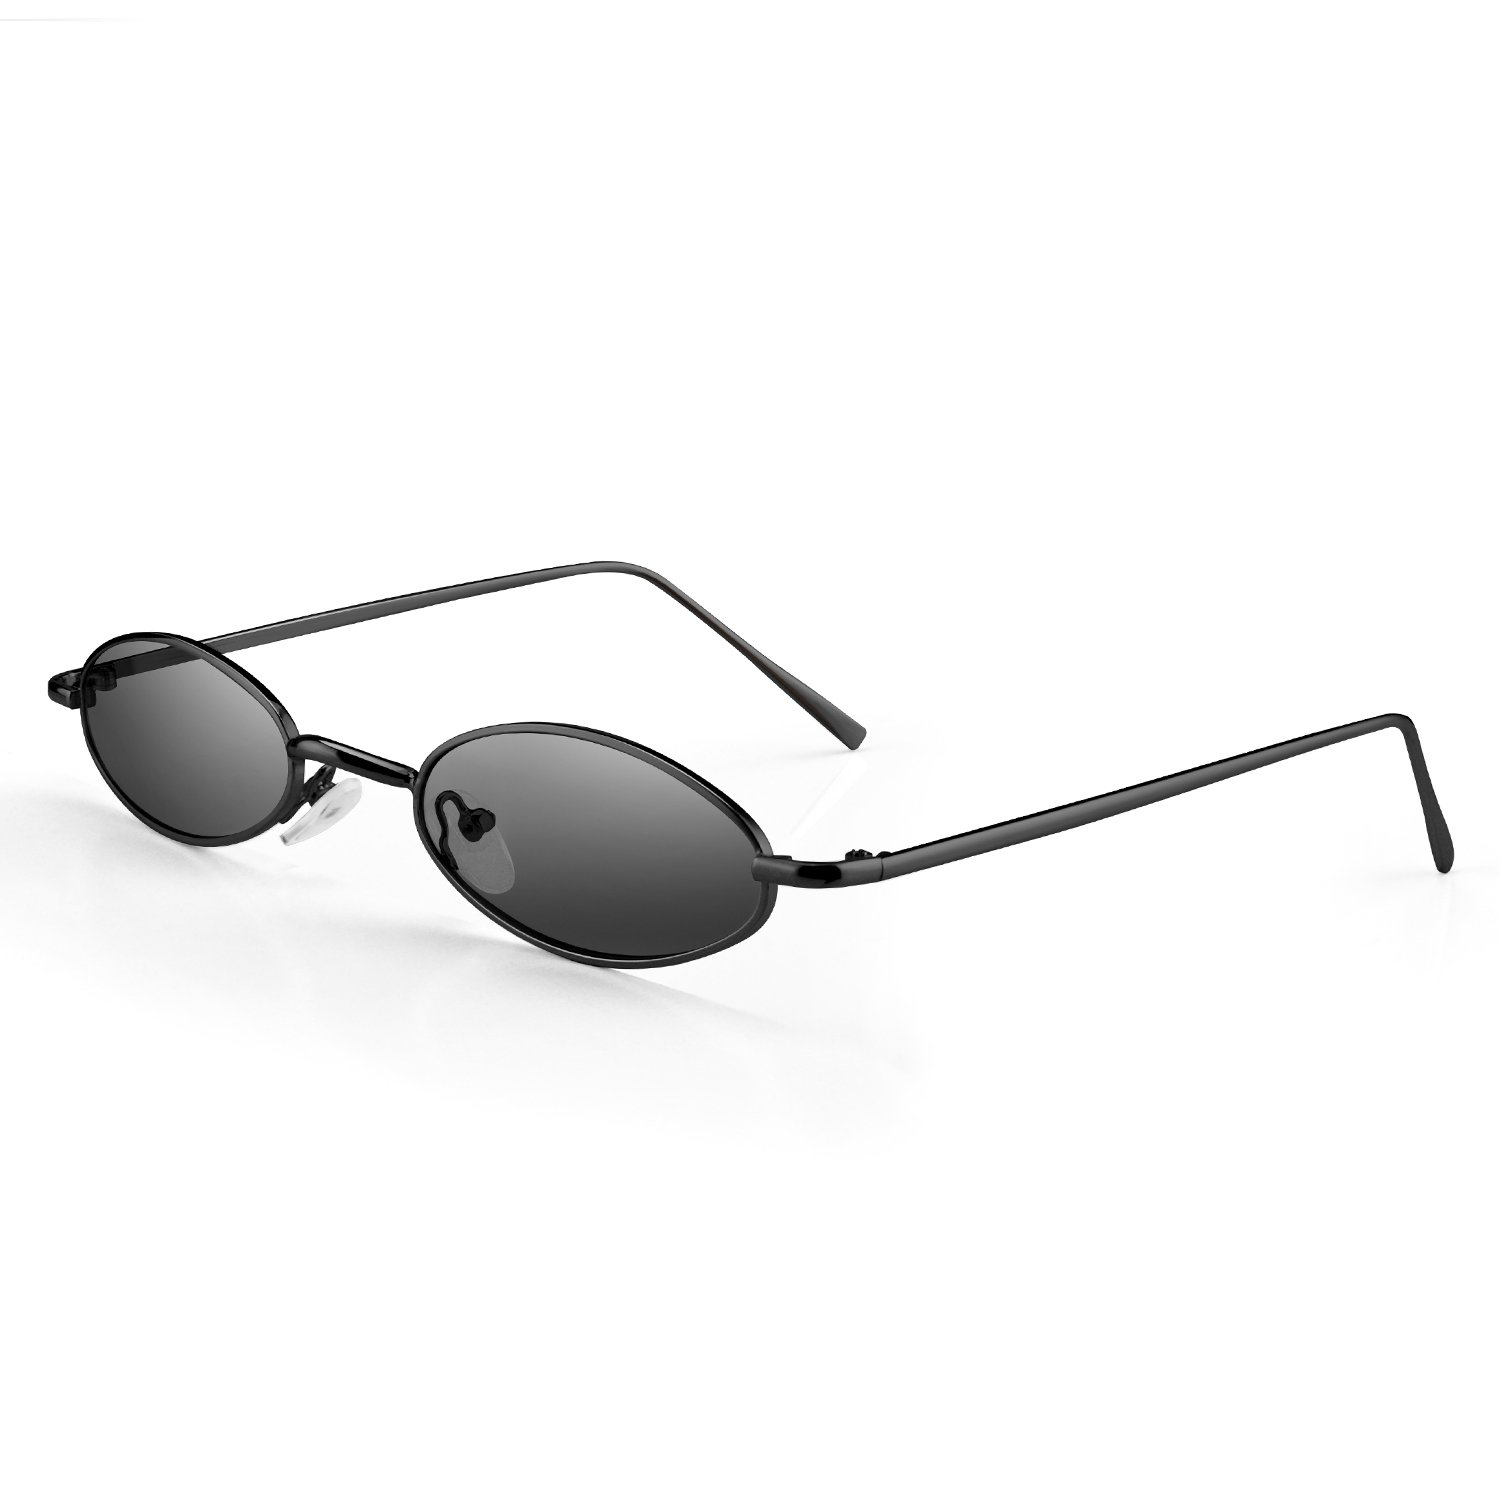 cc50172fd1 Amazon.com  PGXT Vintage Slender Oval Super Small Sunglasses For Girls Sexy  Retro Round Tiny Sun (Black frame